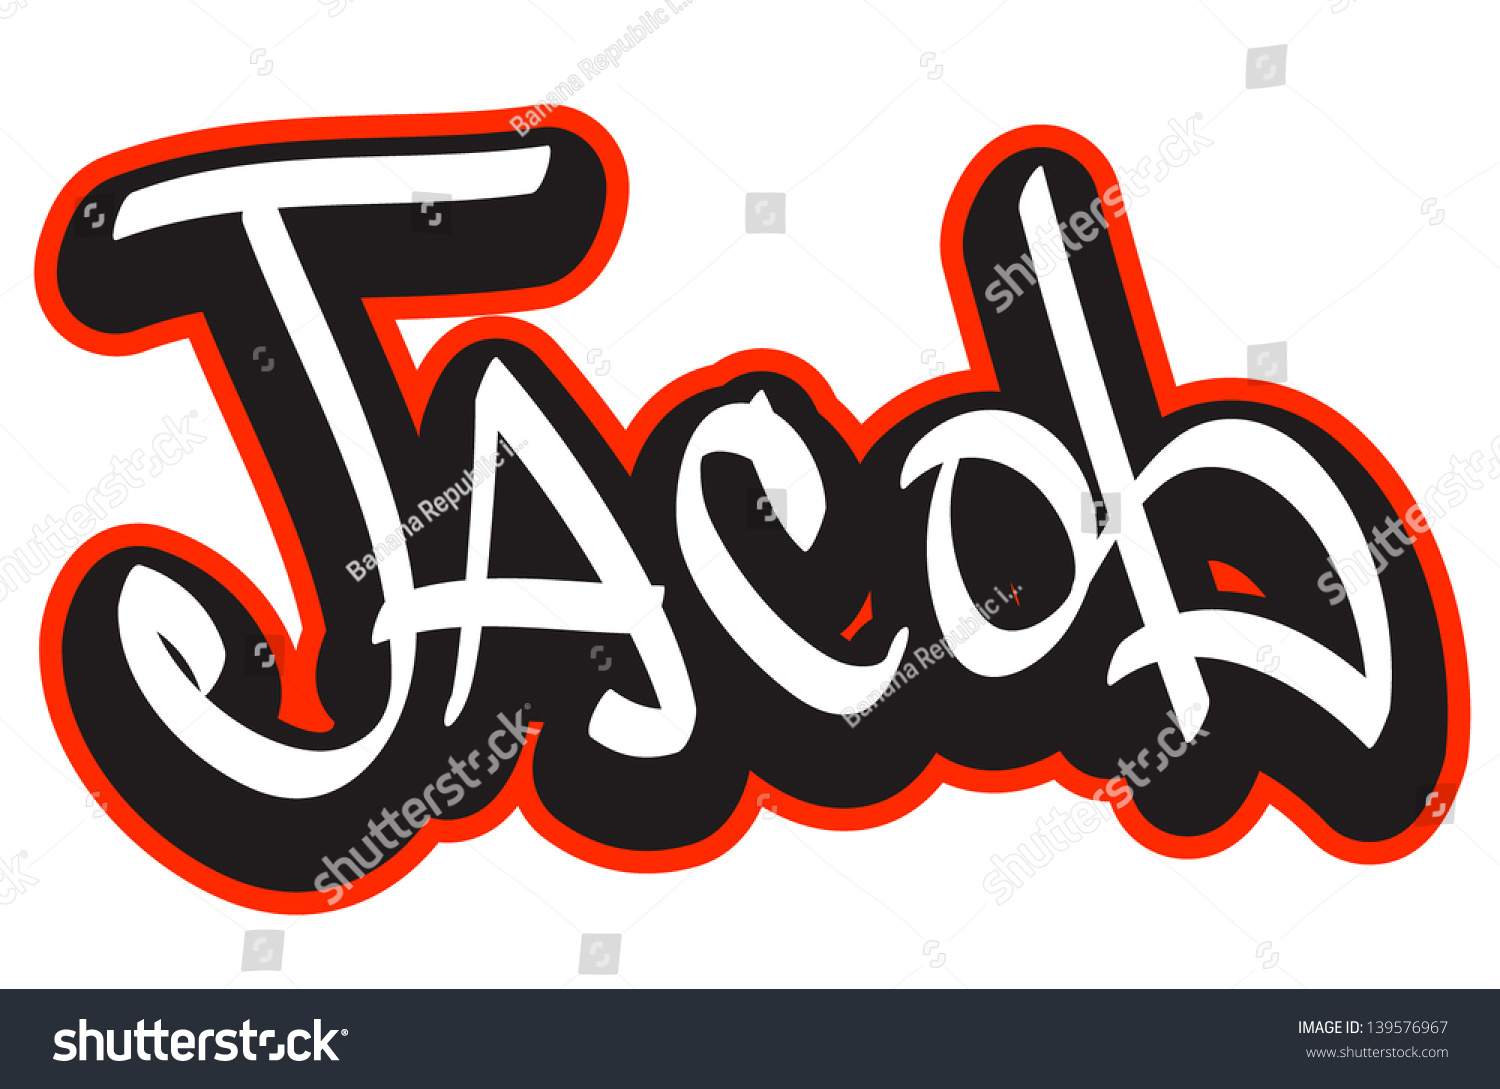 T shirt design hip hop - Jacob Graffiti Font Style Name Hip Hop Design Template For T Shirt